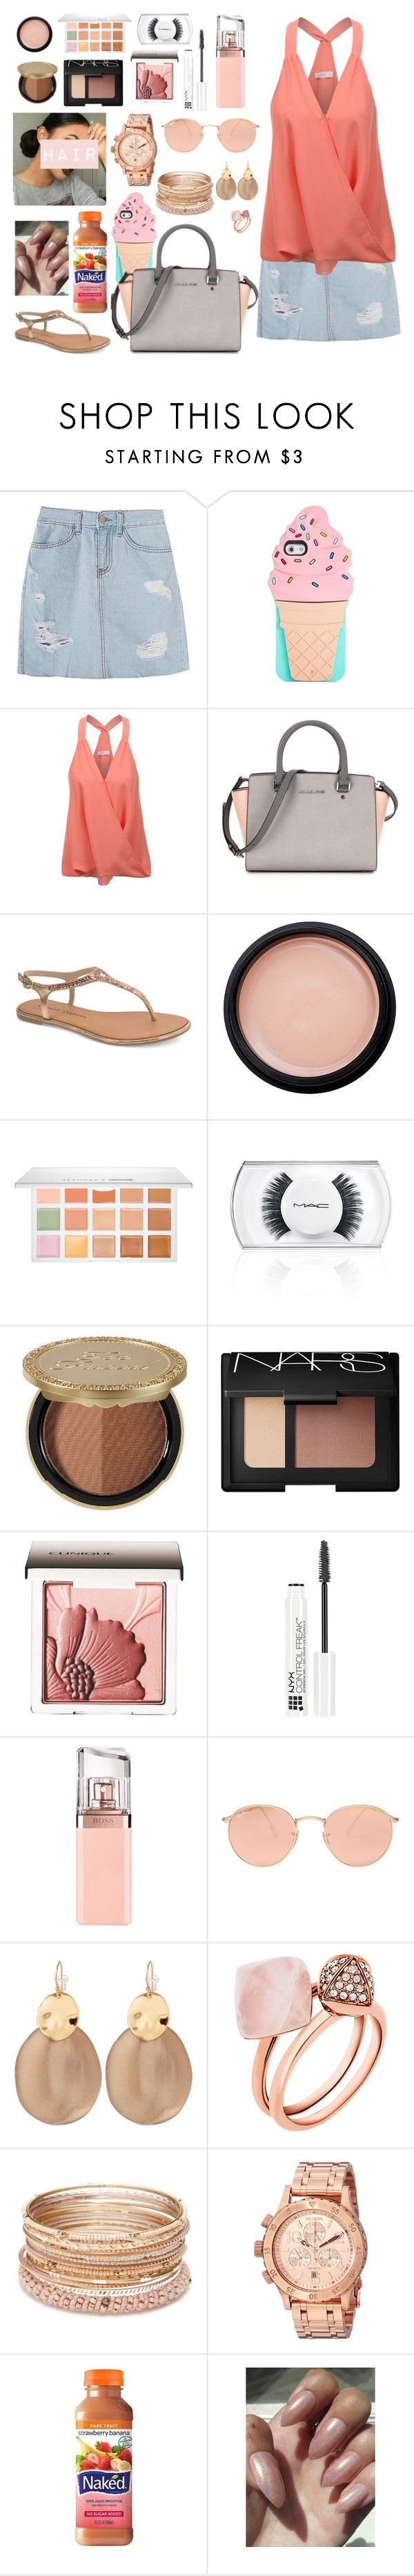 """""""Kehlani's new album is 👌🏾👌🏾👌🏾🔥🔥🔥🔥"""" by cissylion ❤ liked on Polyvore featuring Kate Spade, LE3NO, Chinese Laundry, Sephora Collection, MAC Cosmetics, Too Faced Cosmetics, NARS Cosmetics, Clinique, NYX and HUGO"""